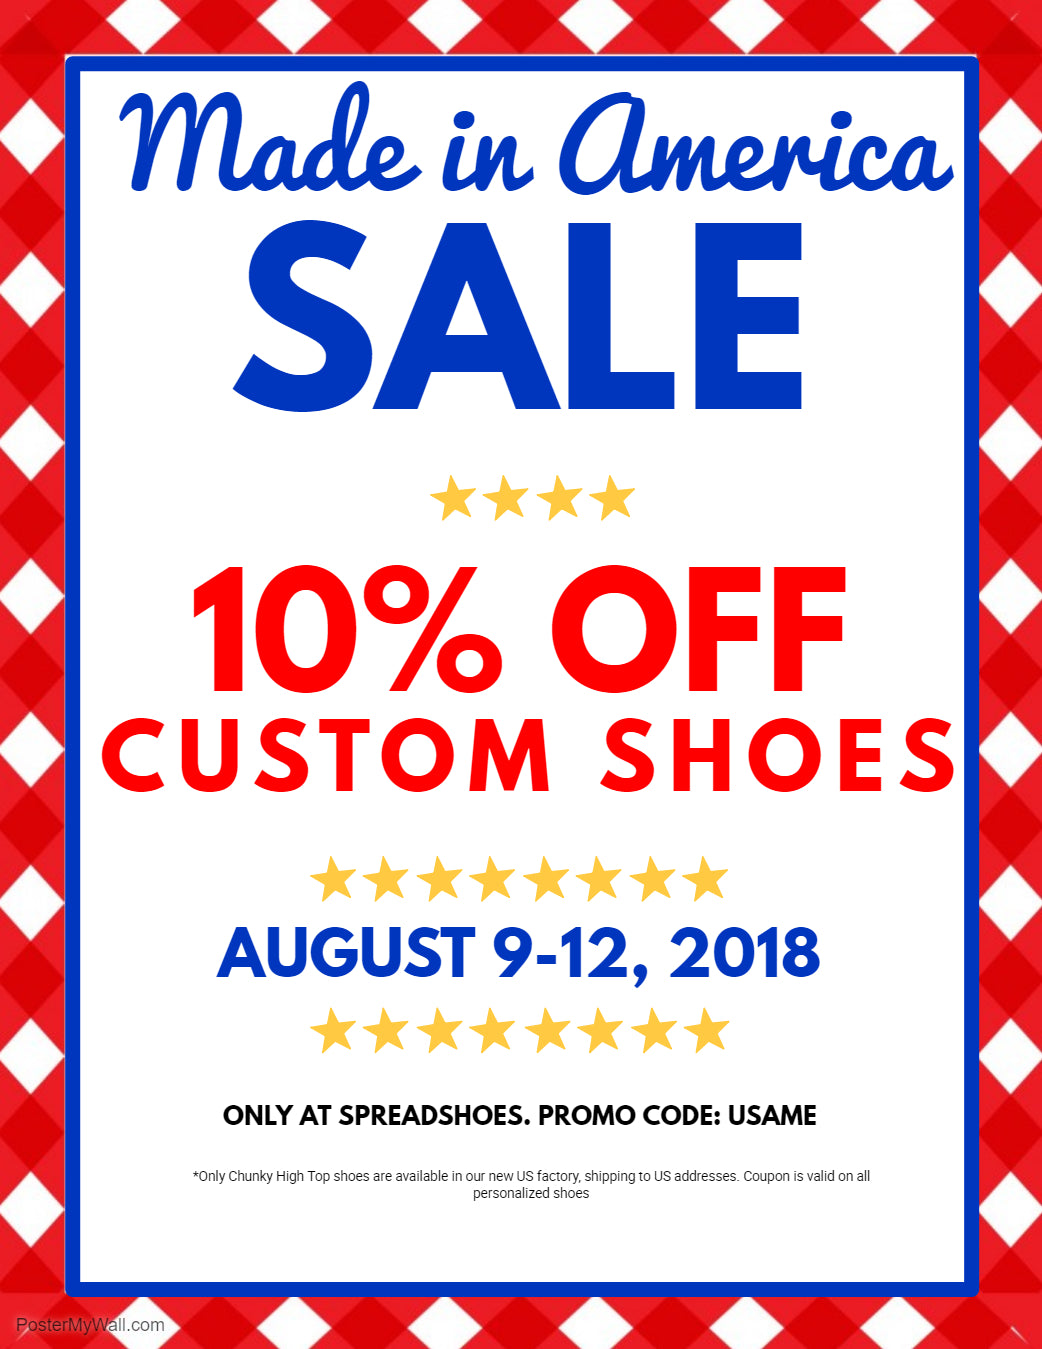 Custom Shoes Made in the USA